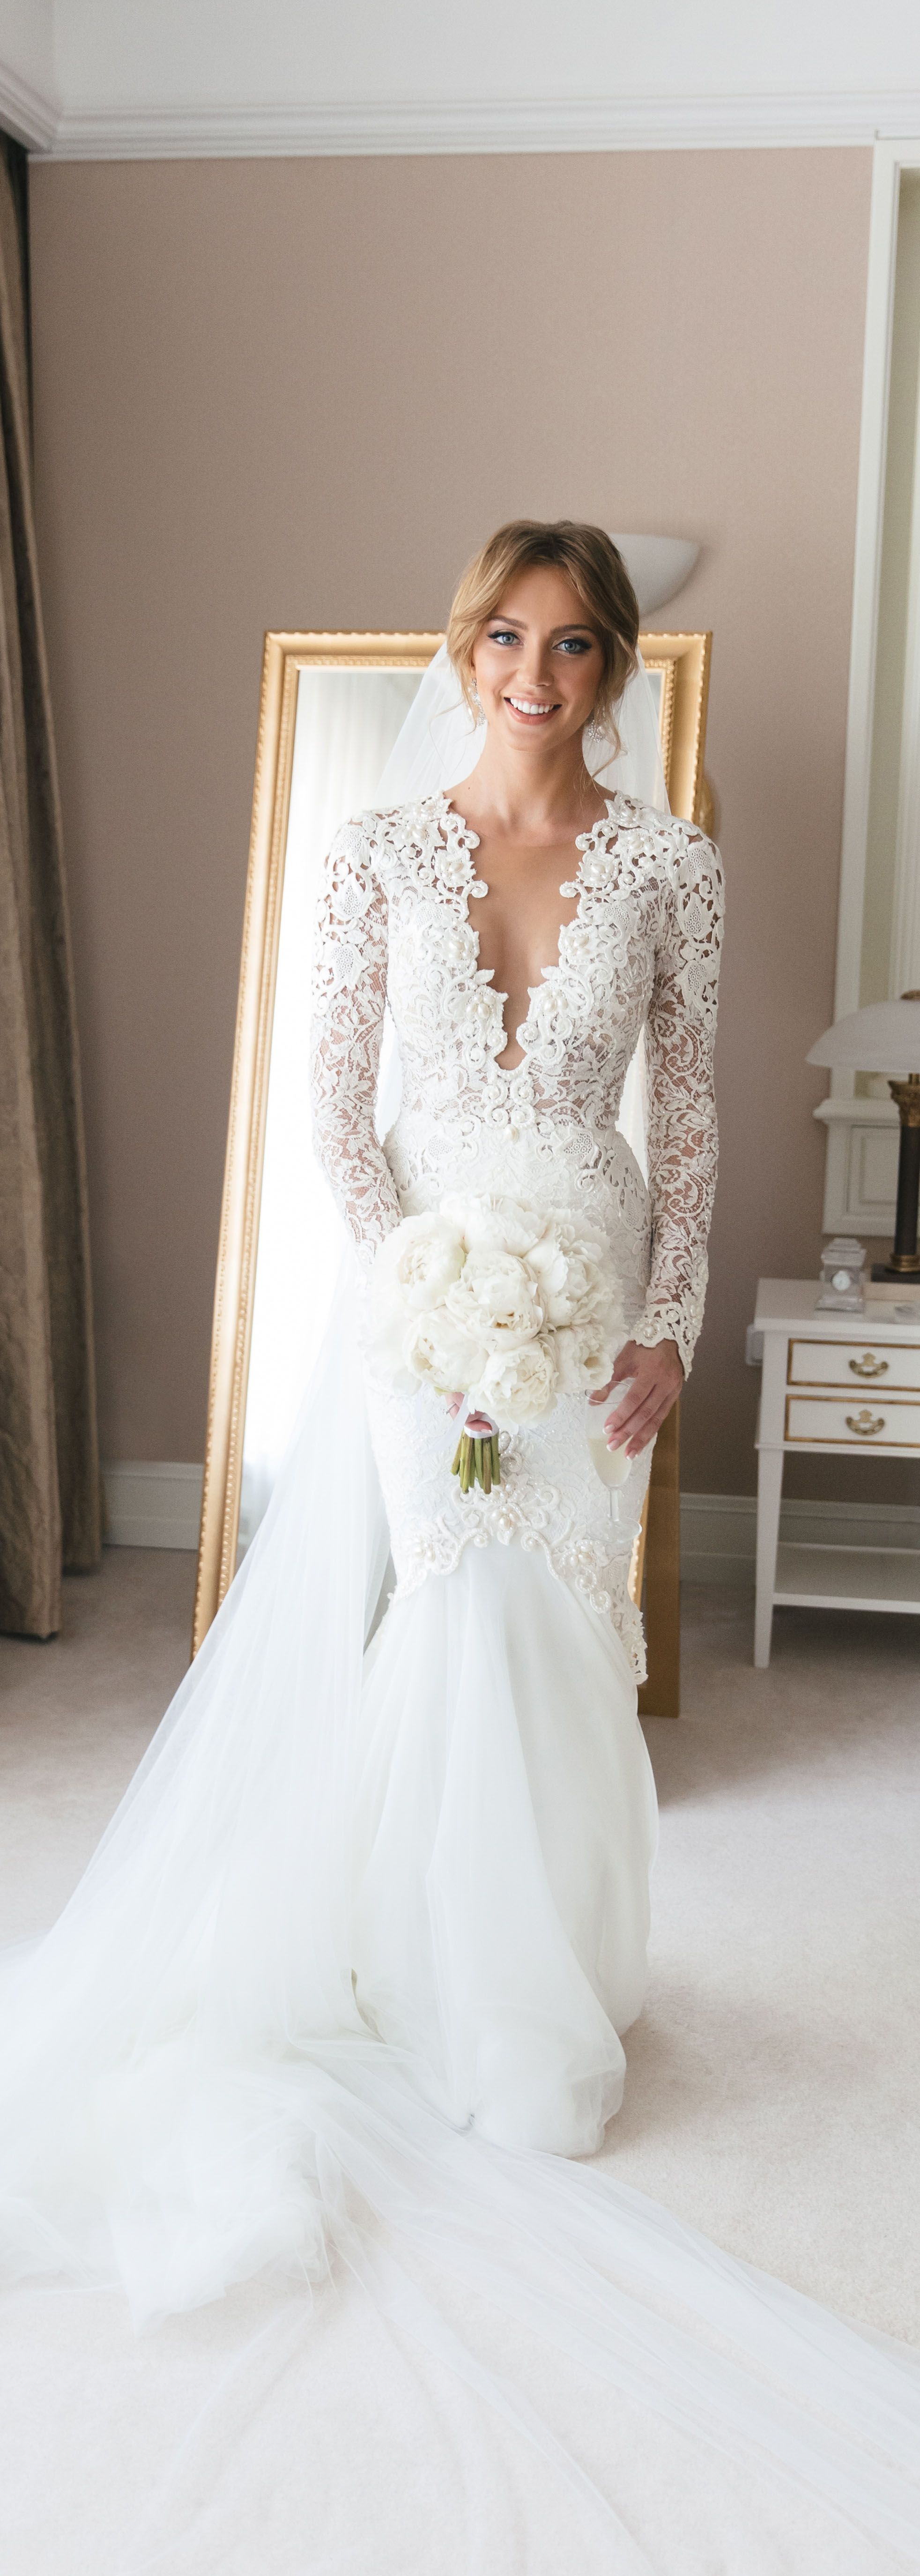 Used berta wedding dress  Stunning BERTA bride from Saint Petersburg uc Pictures by Fontana